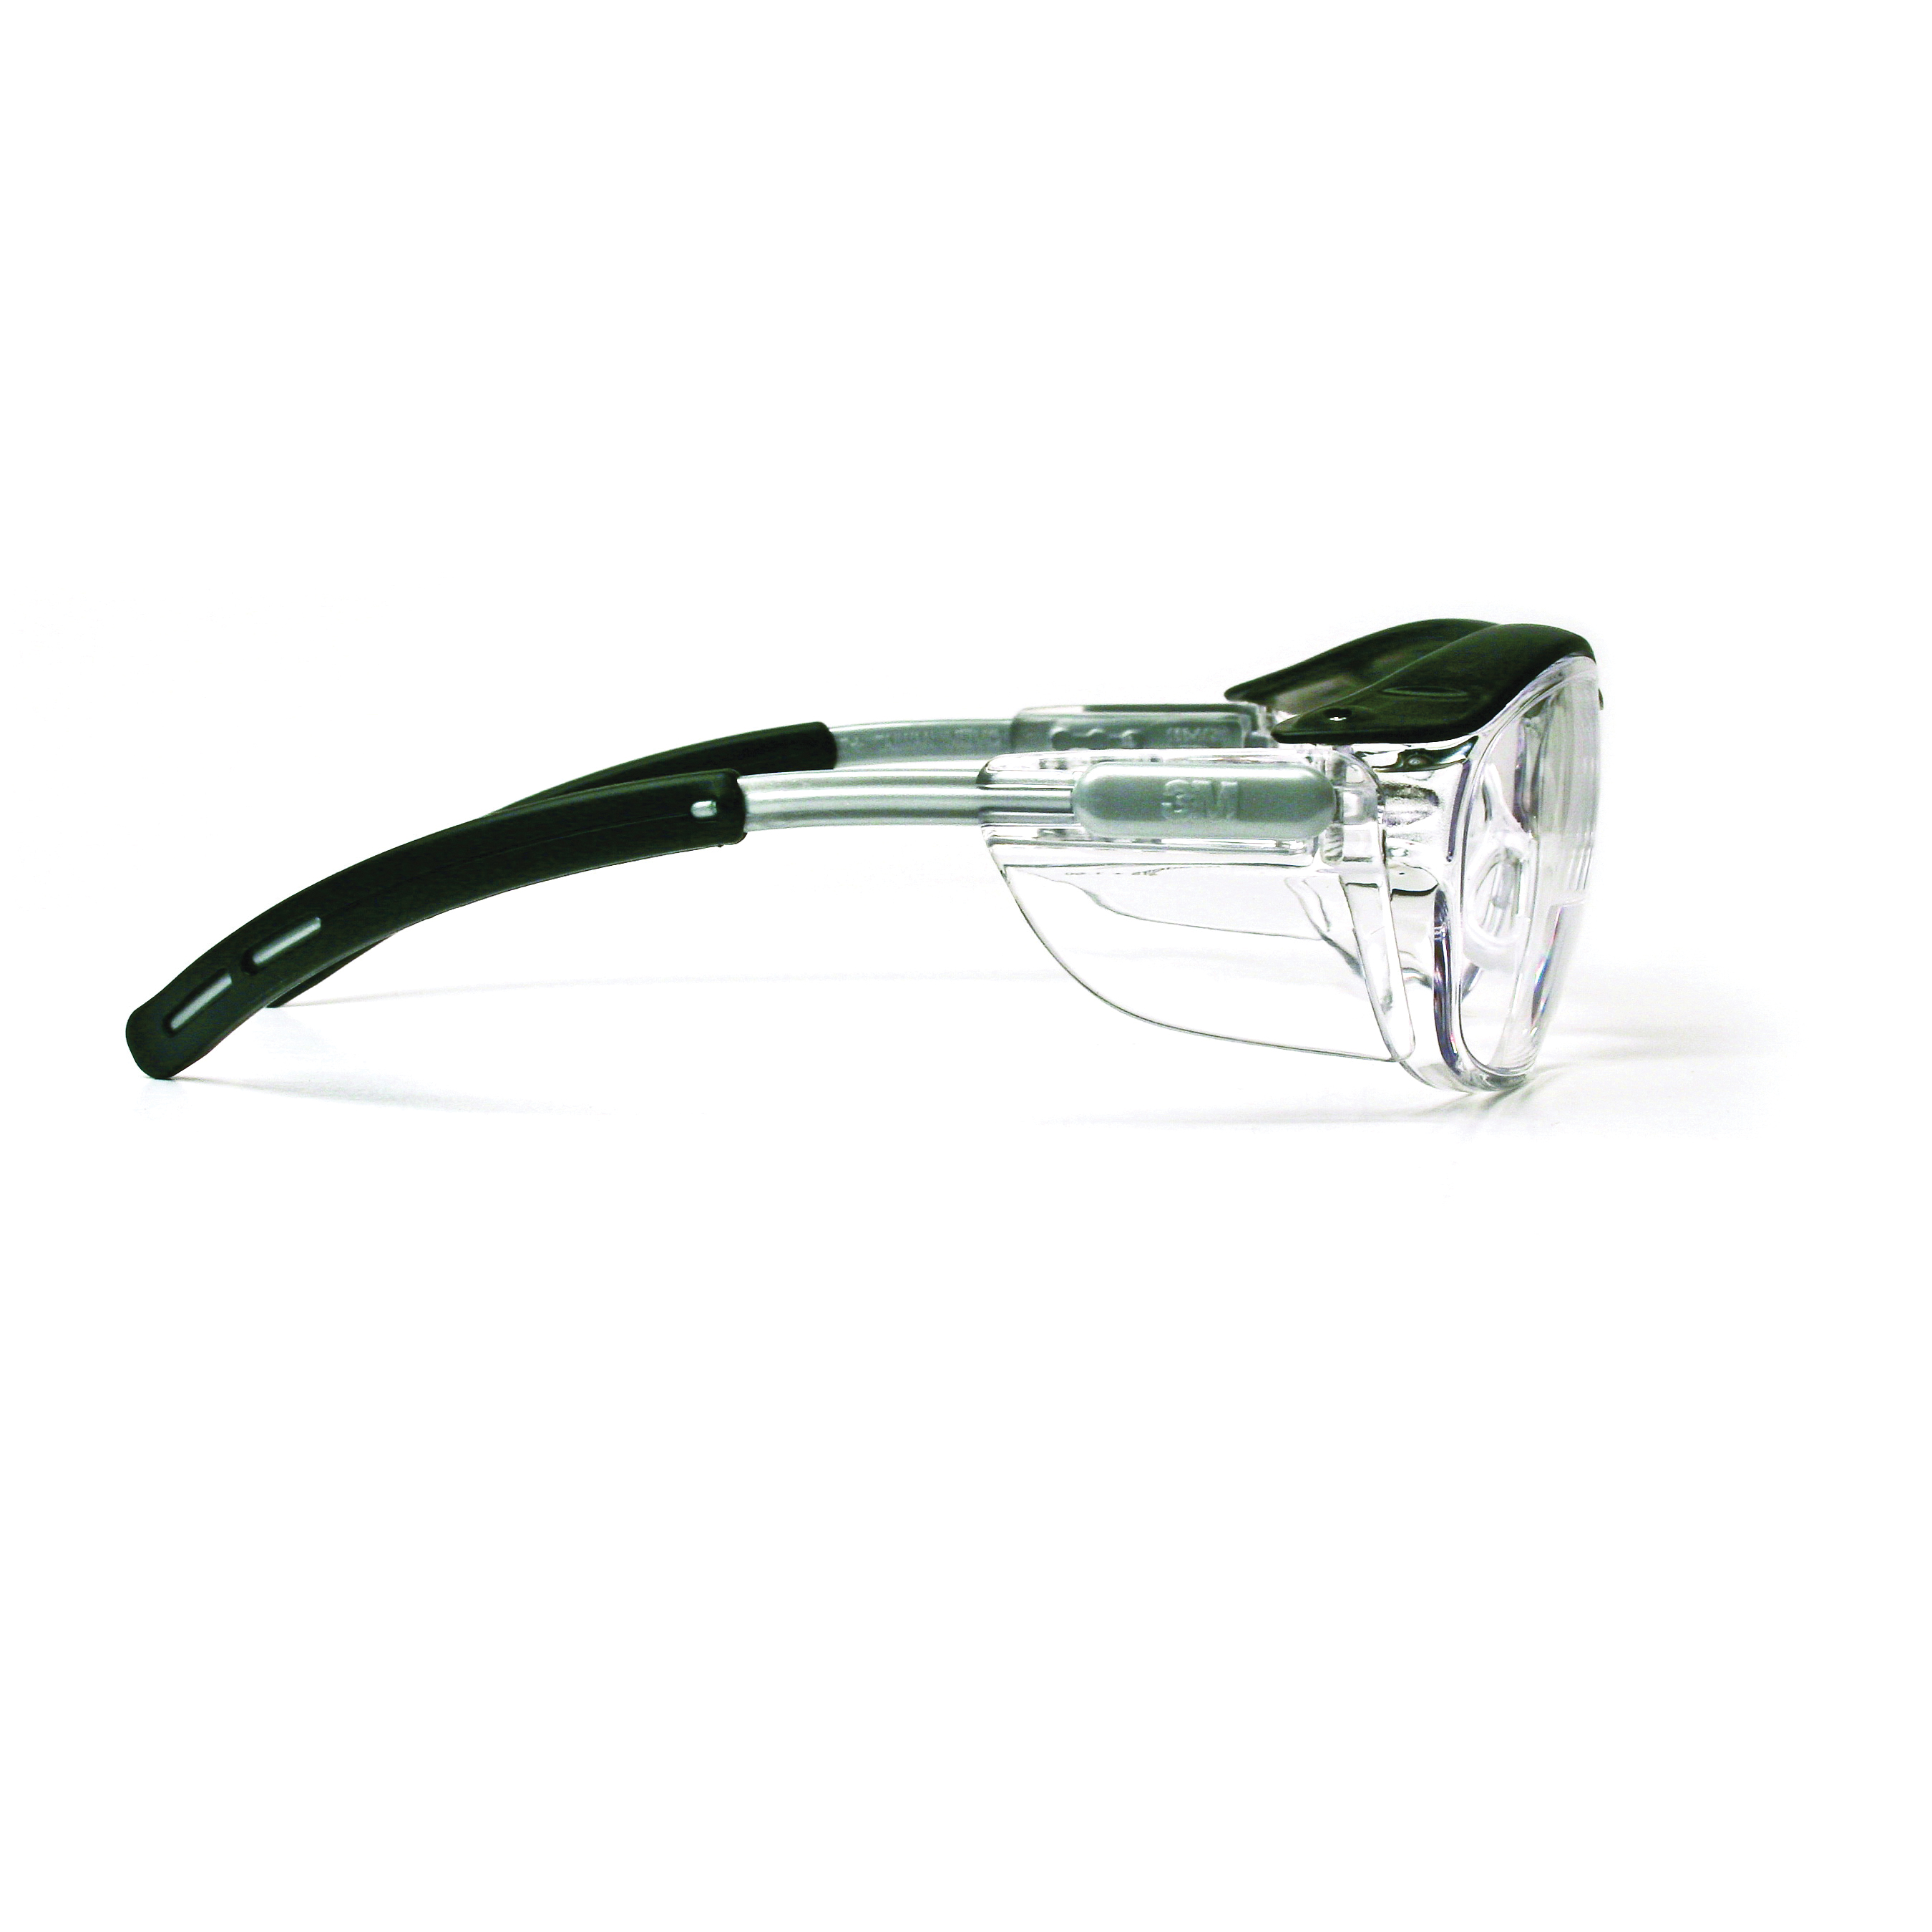 3M™ Nuvo™ 078371-62062 11434-00000-20 Bi-Focal Lens Lightweight Reader Protective Eyewear, 1.5 Diopter, Clear Lens, Gray Plastic Frame, Polycarbonate Lens, 99.9% UV Protection, Specifications Met: ANSI Z87.1-2015, CSA Z94.3-2007